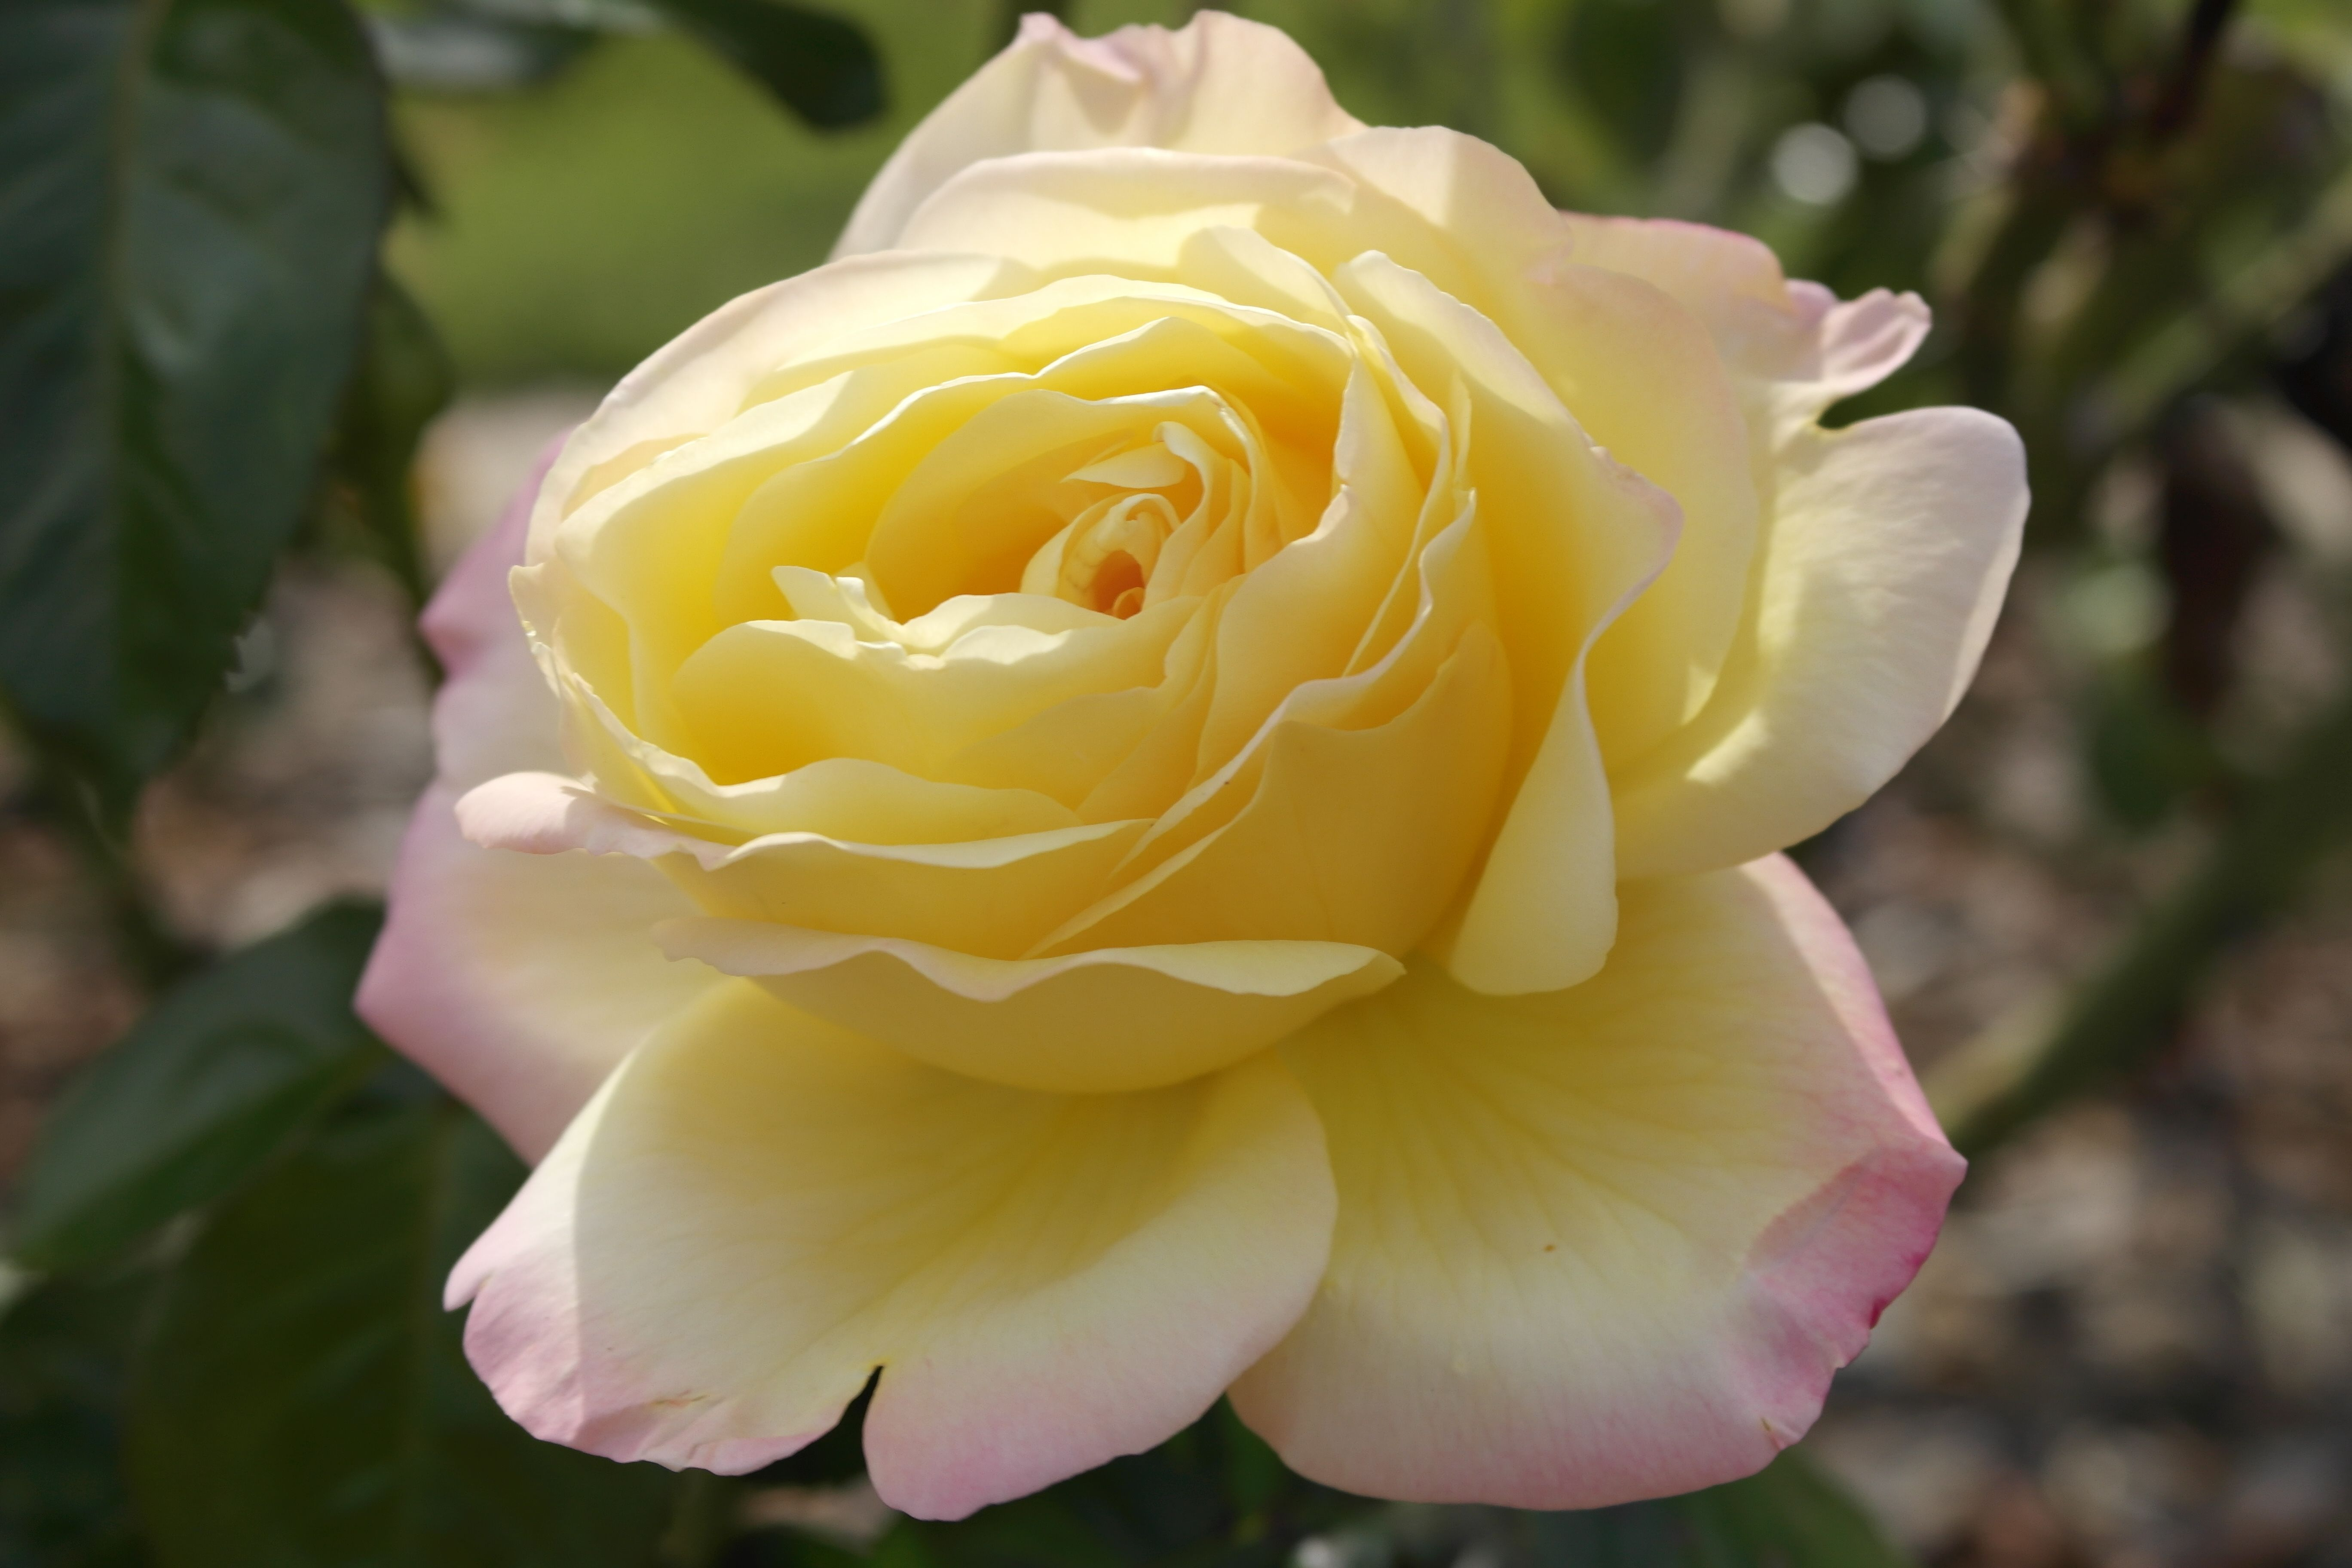 The Gardens, Pink-tipped yellow rose.